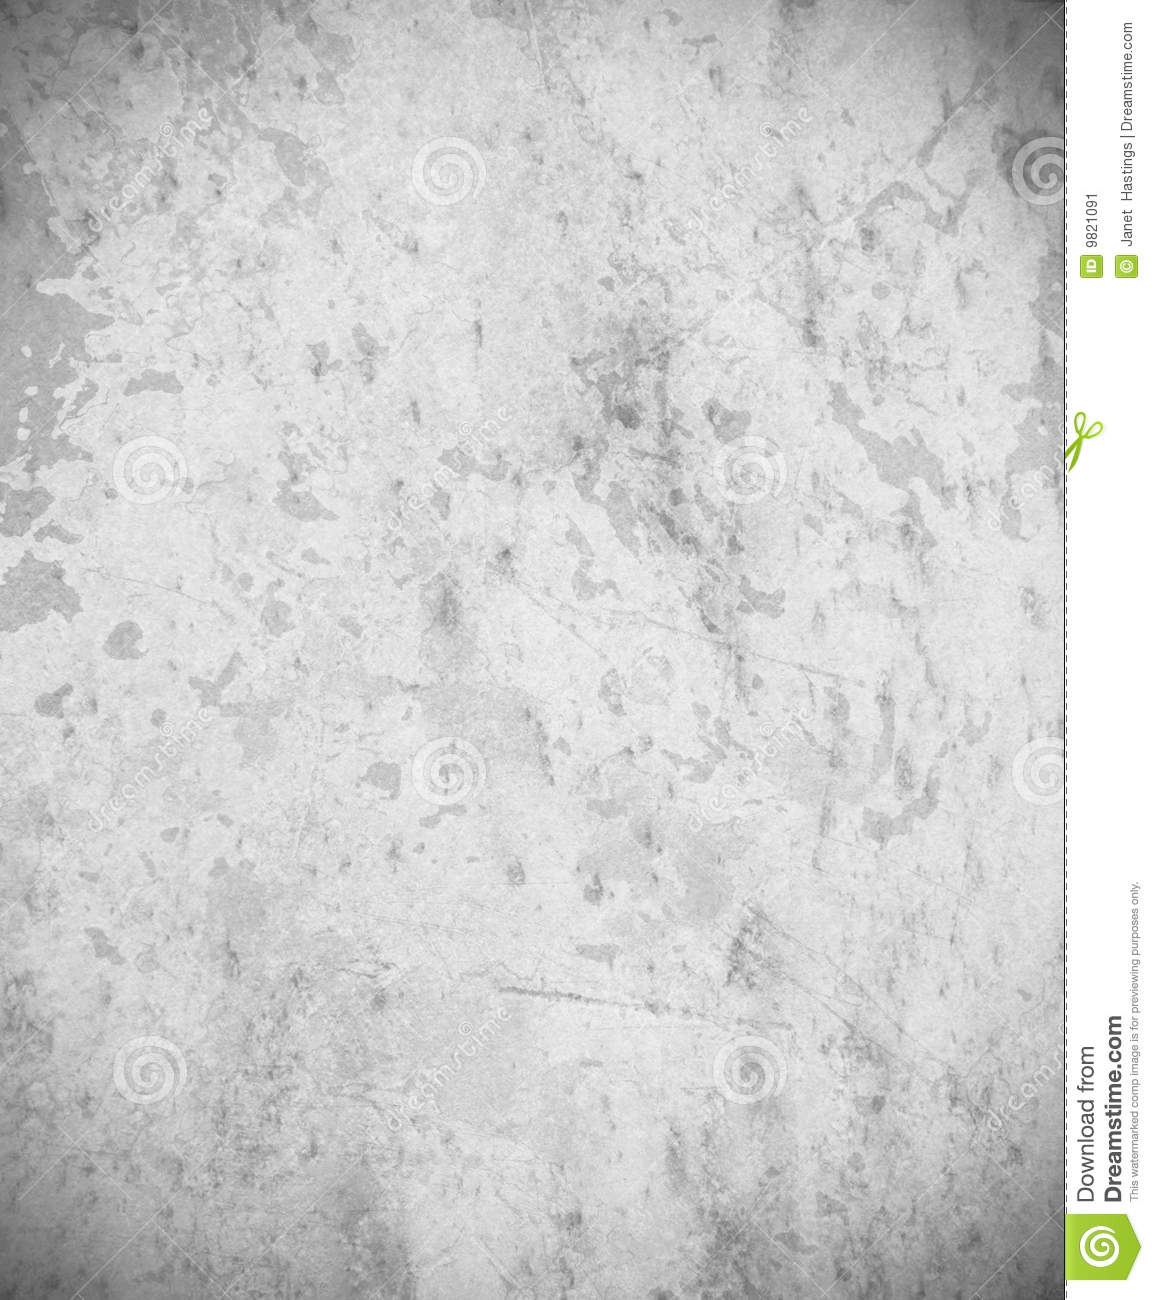 Black And White Geometric Wallpaper Gray Grunge Background With Copy Space Stock Illustration